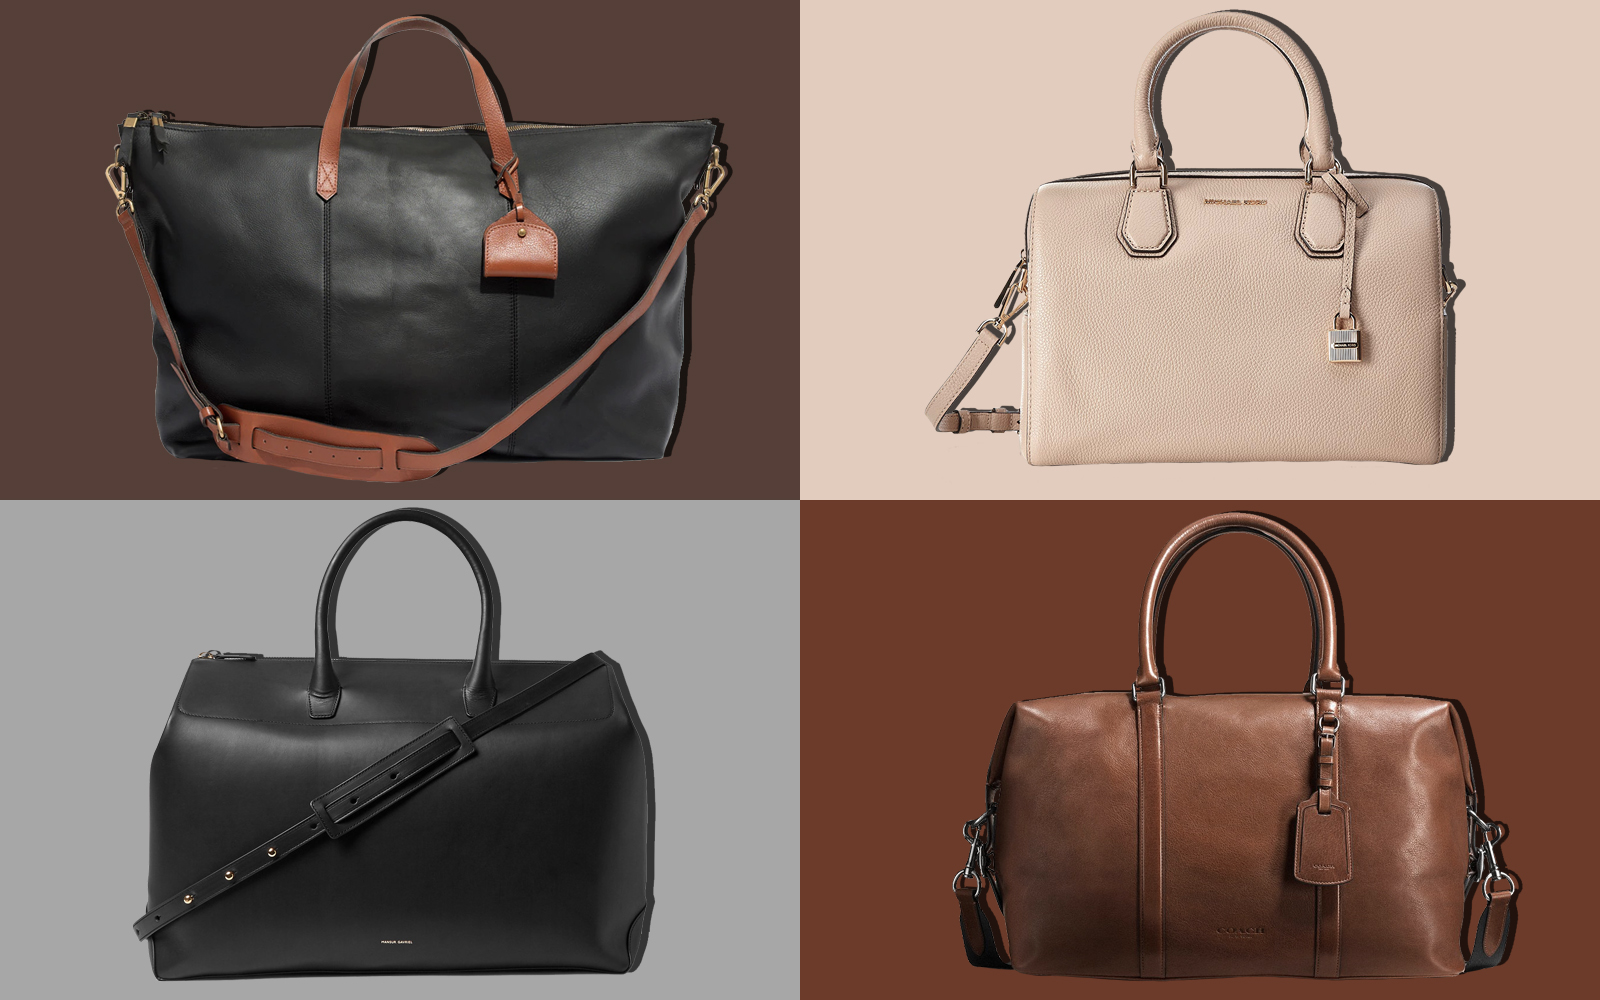 959432db26 The Best Leather Duffel Bags